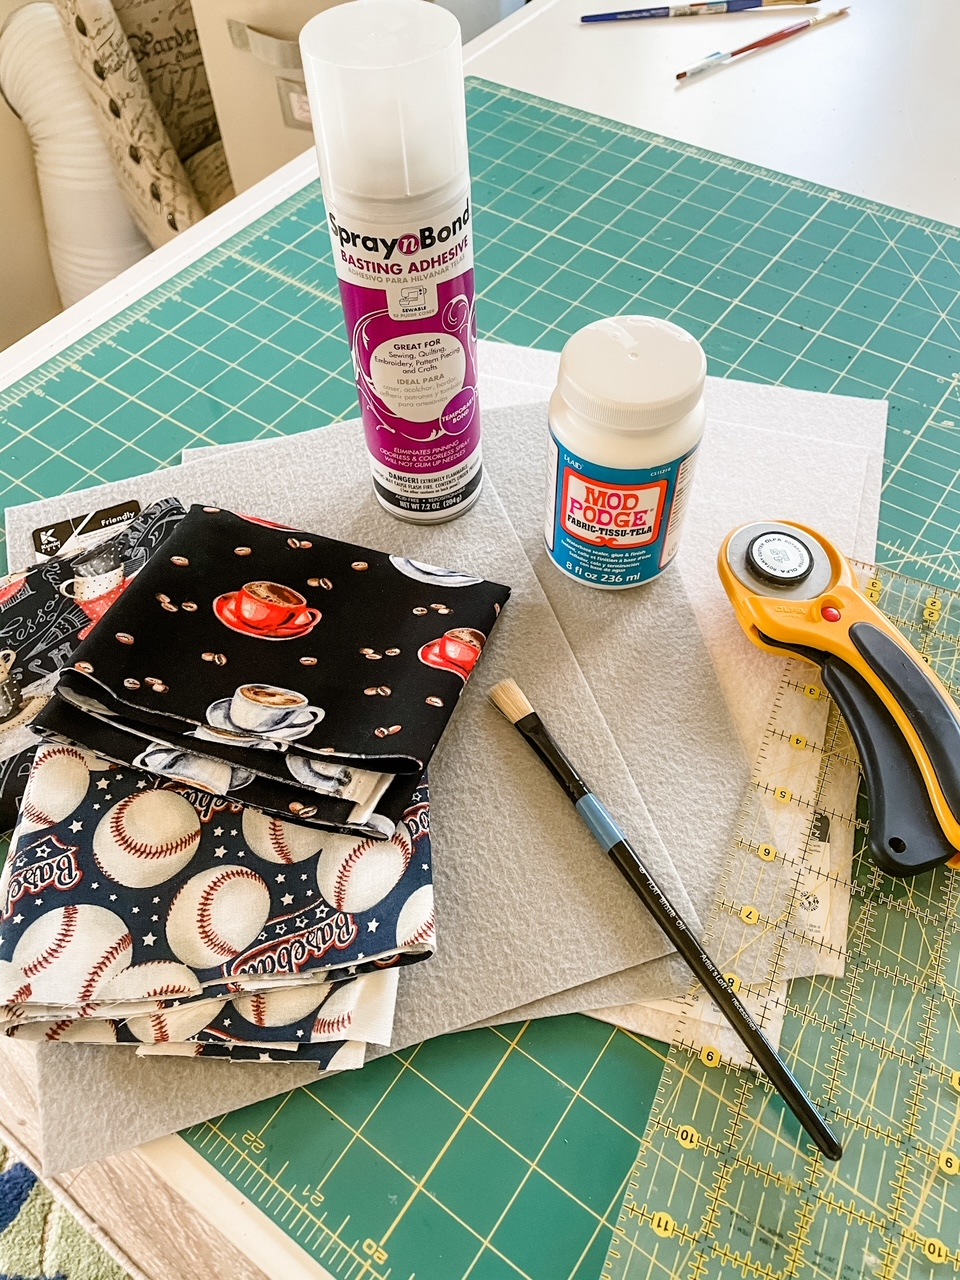 The materials for making the coasters nestled on top of a measuring pad